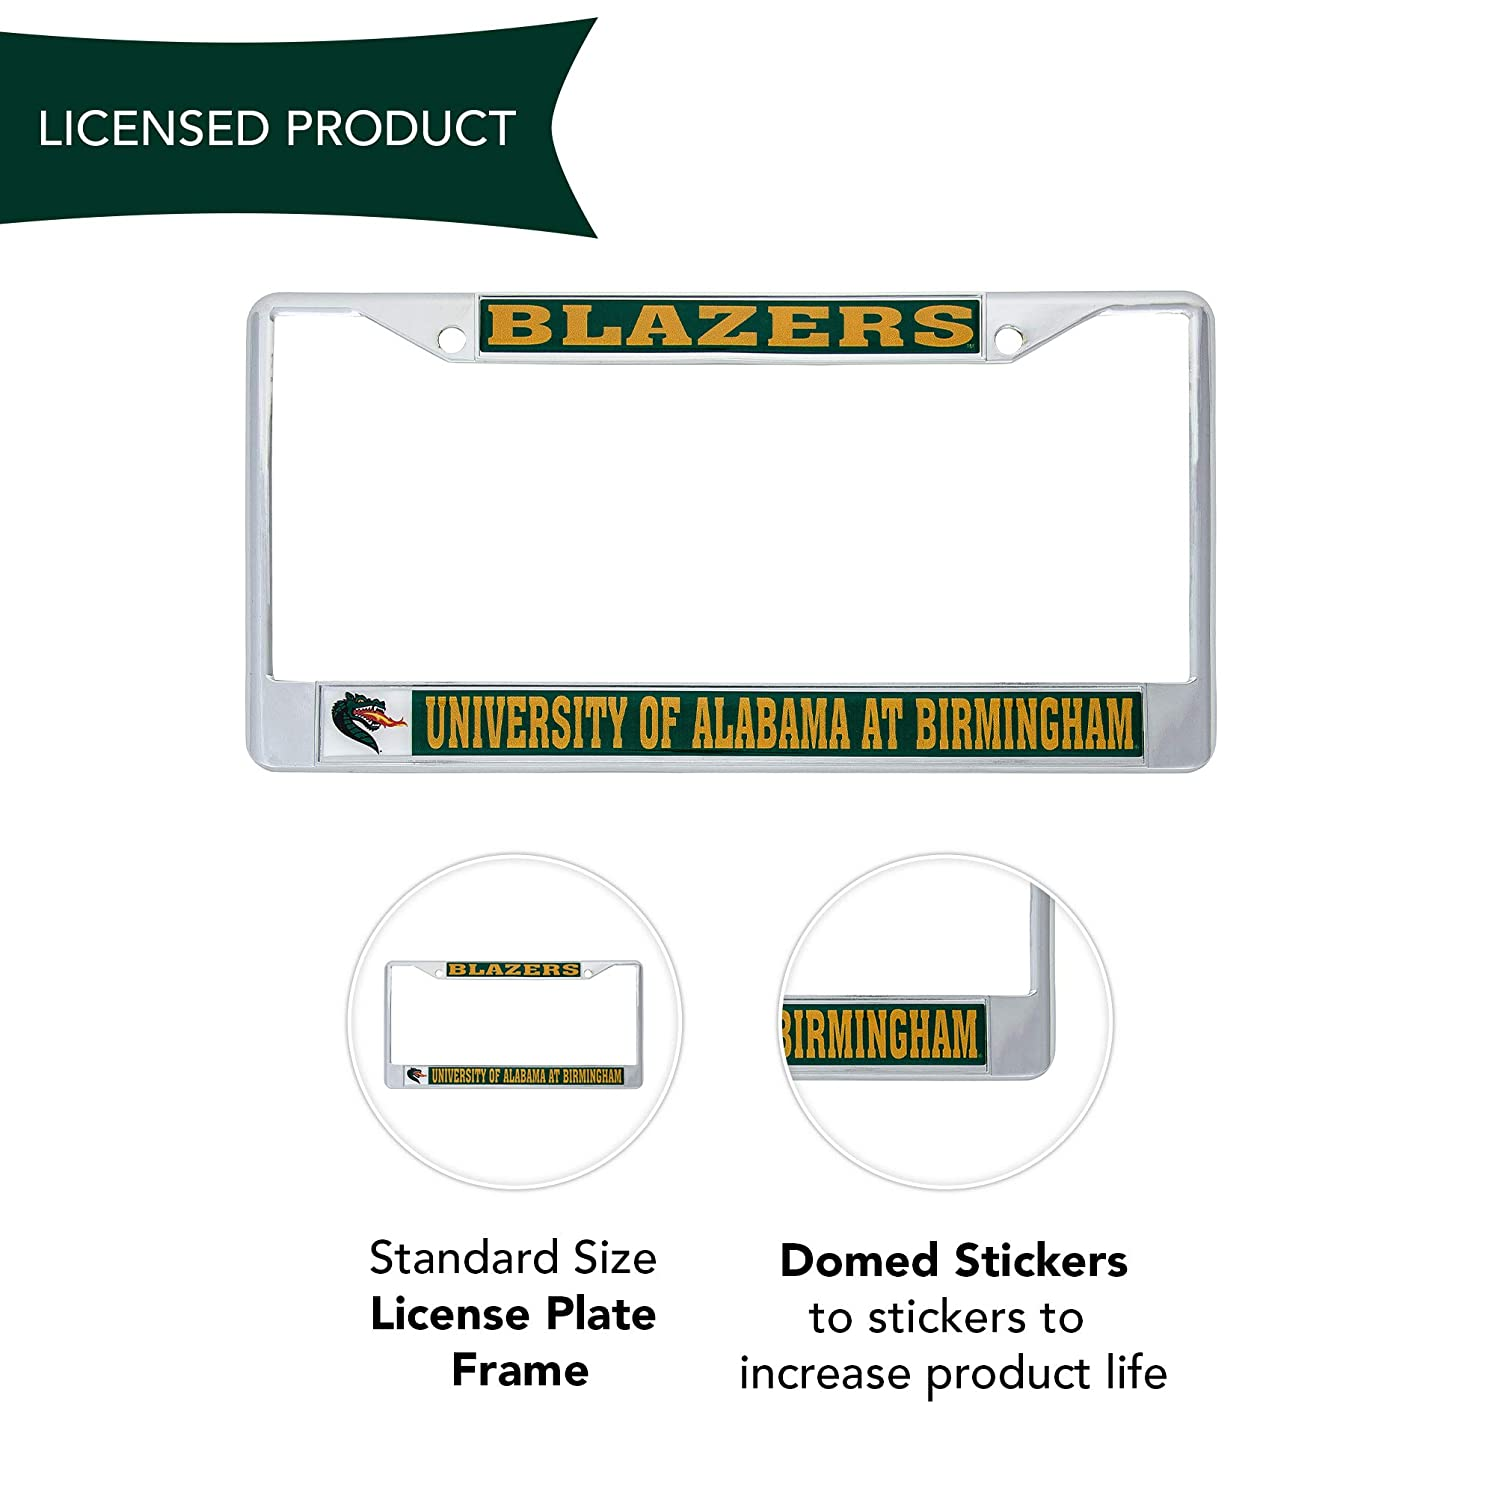 Desert Cactus University of Alabama at Birmingham Blazers Metal License Plate Frame for Front Back of Car Officially Licensed Mascot